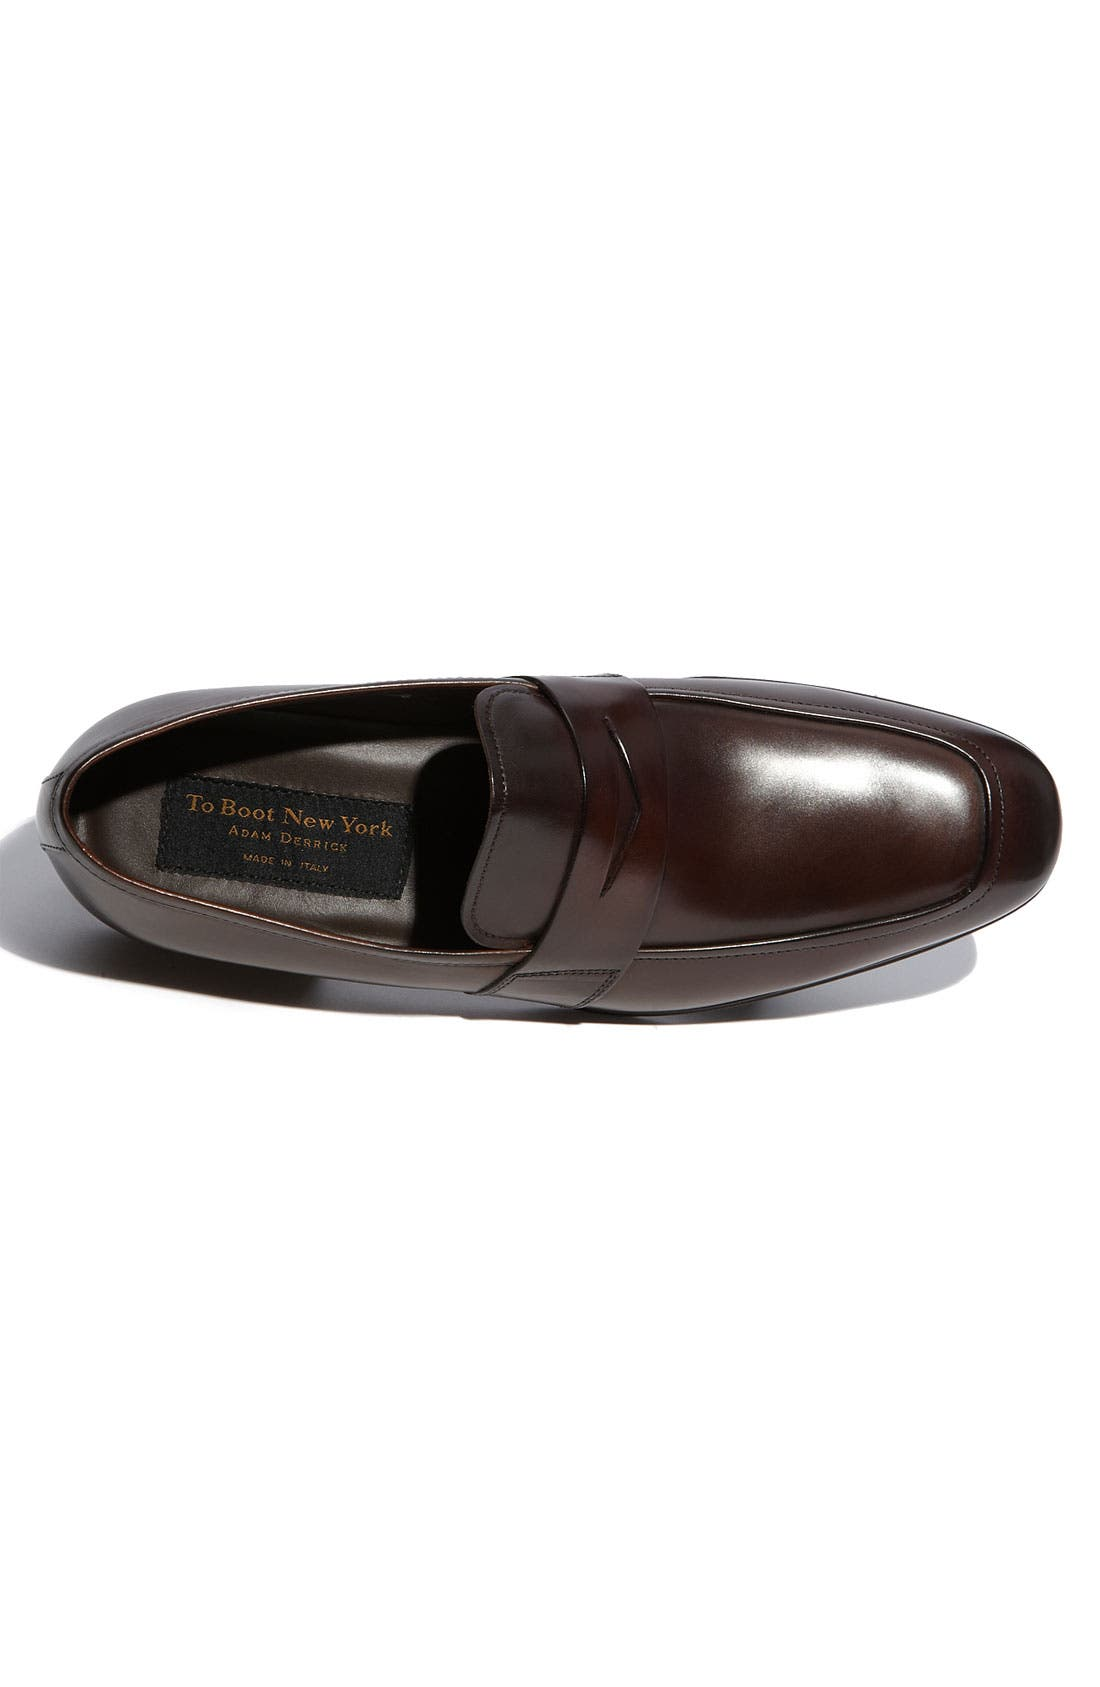 Alternate Image 3  - To Boot New York 'Senato' Penny Loafer (Men)